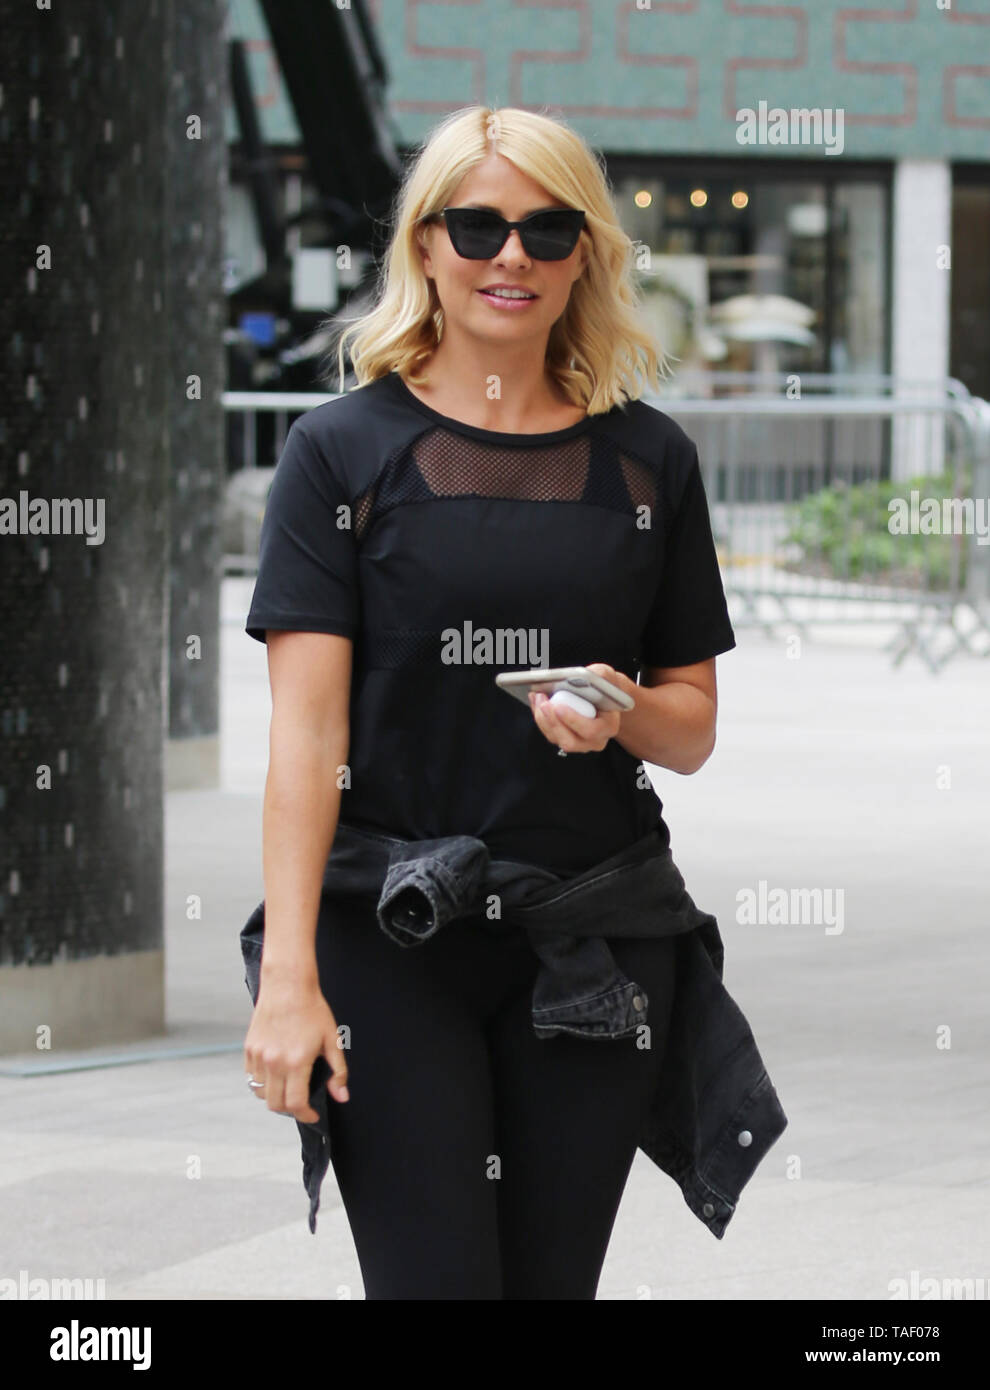 Holly Willoughby in her gym gear outside ITV Studios  Featuring: Holly Willoughby Where: London, United Kingdom When: 23 Apr 2019 Credit: Rocky/WENN.com - Stock Image